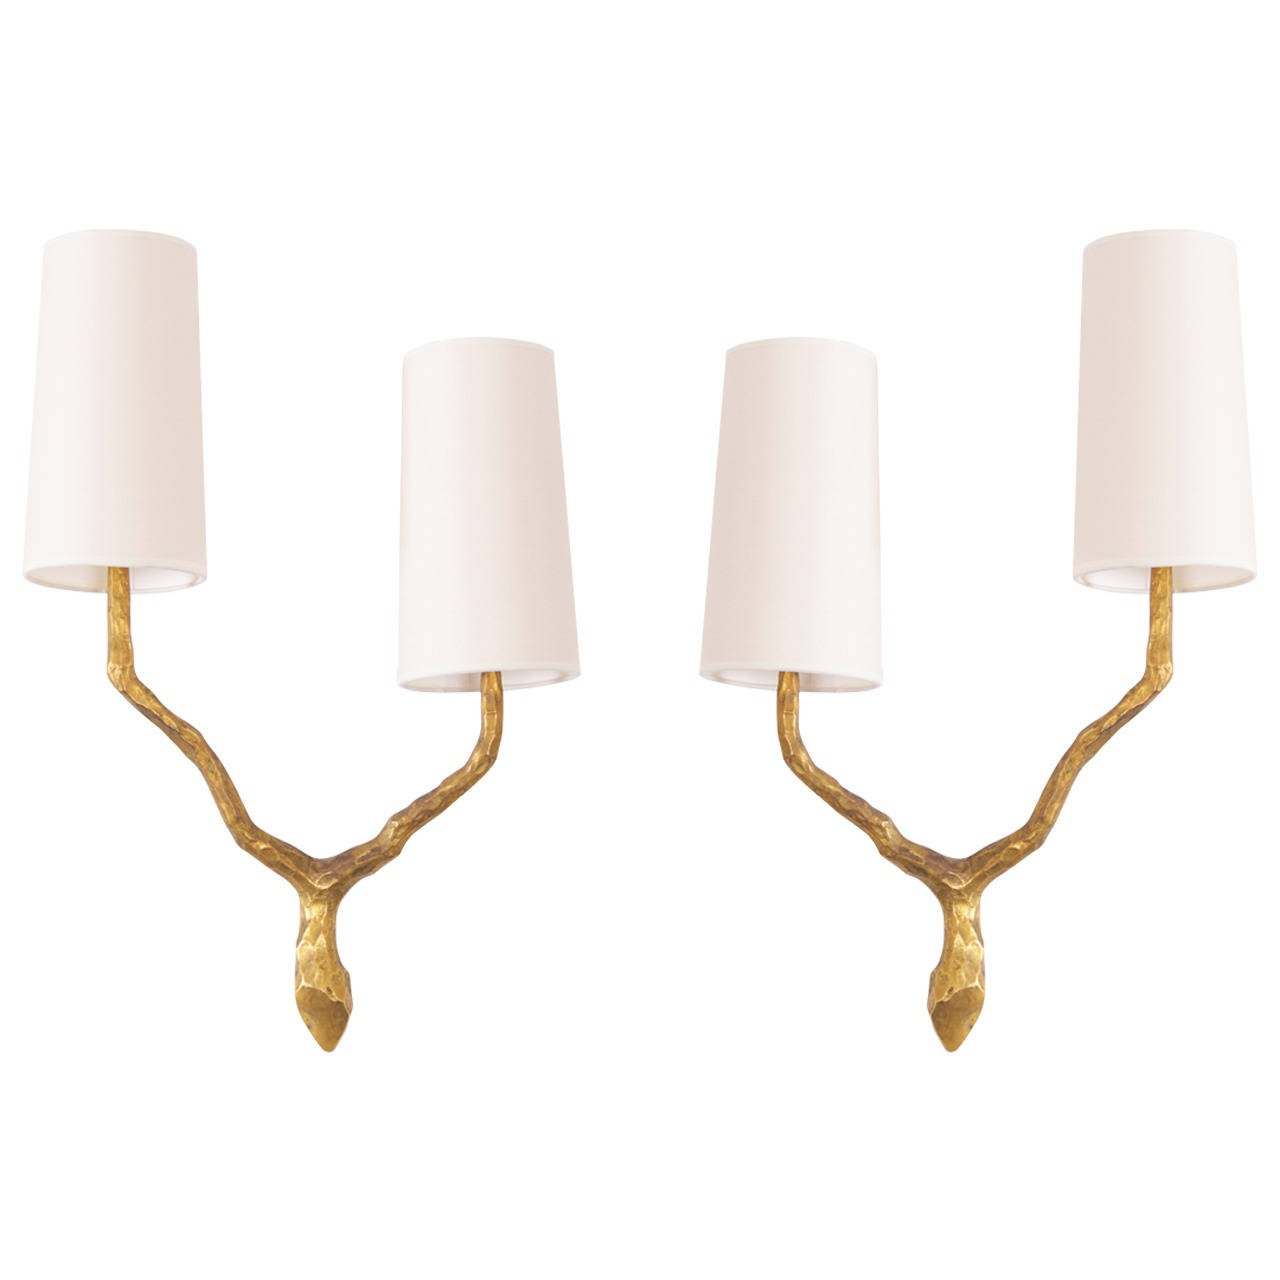 Pair of Bronze Sconces or Wall Lamps from Maison Arlus  Felix Agostini style